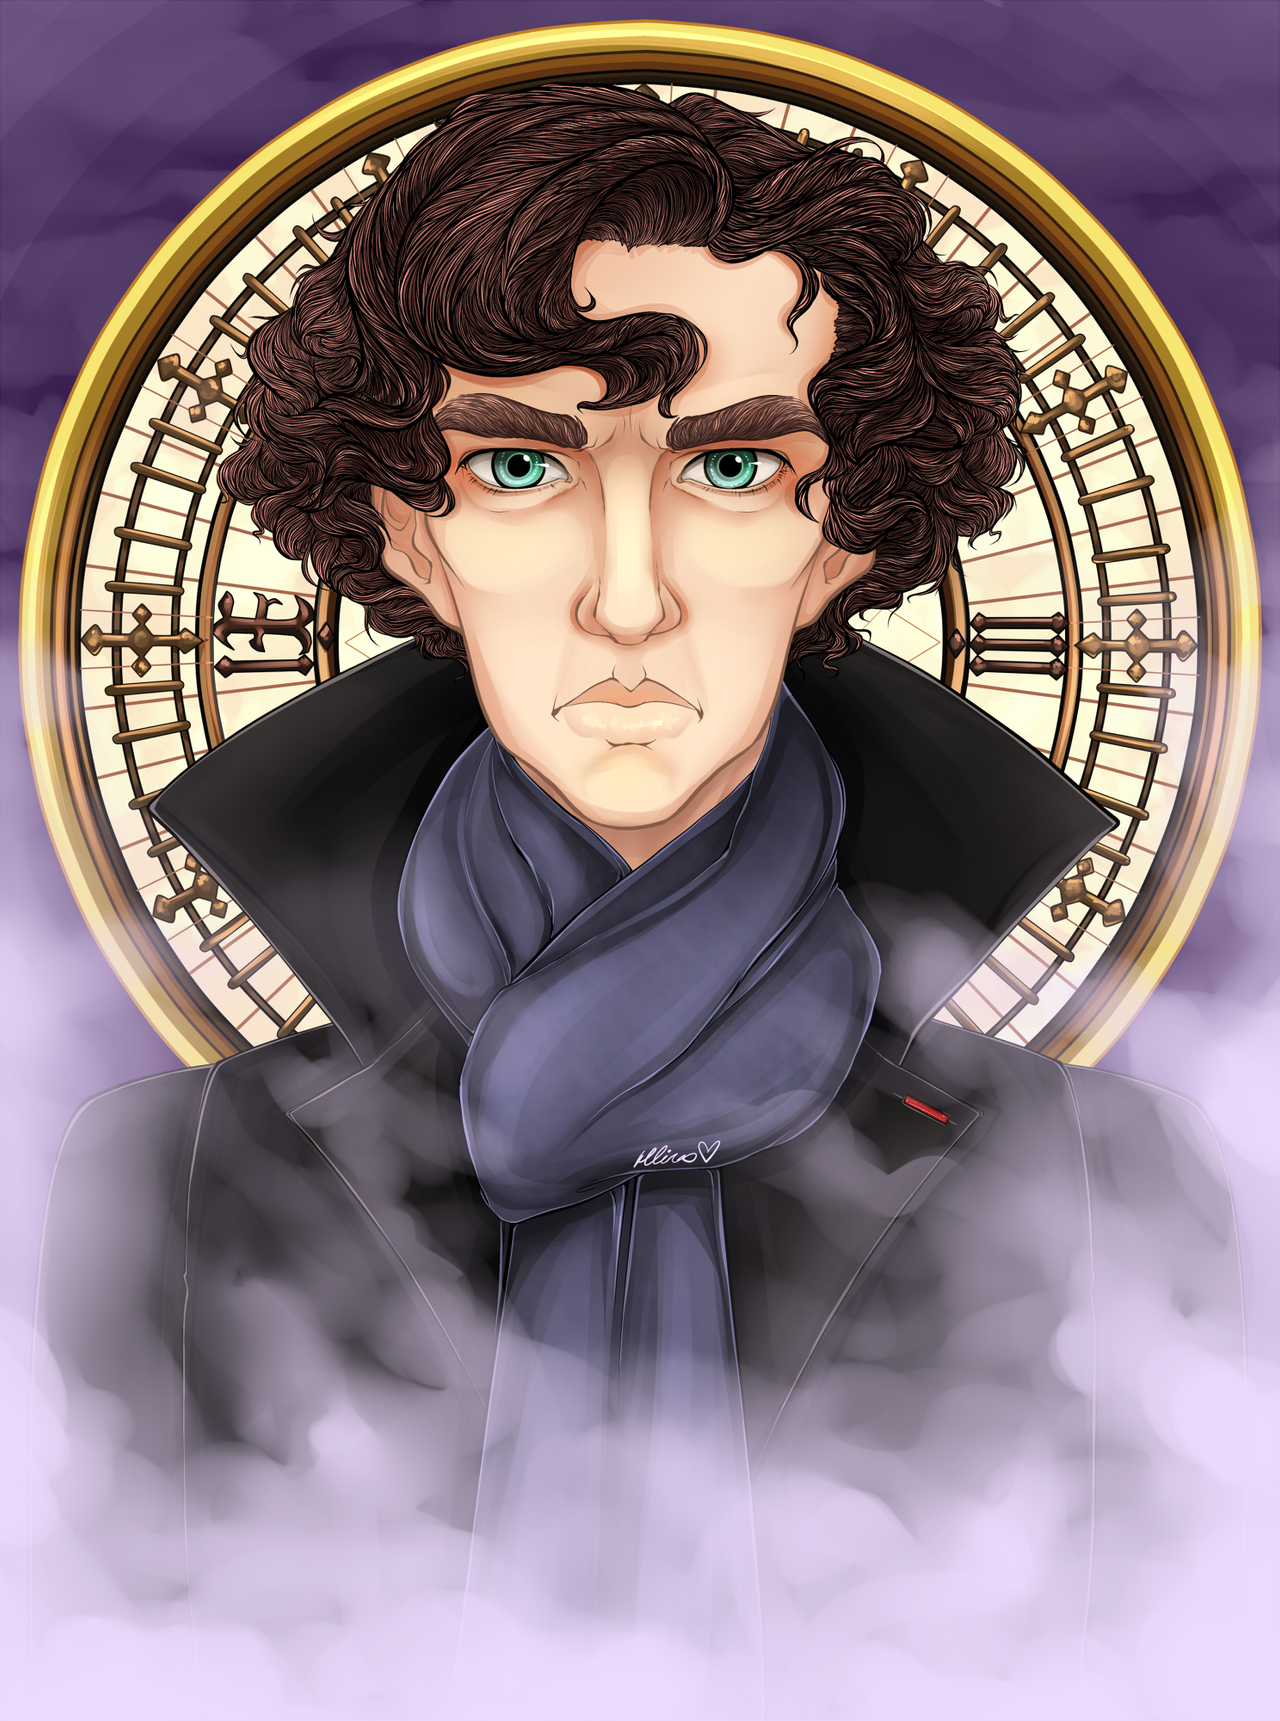 I AM SHERLOCKED by Chao-Illustrations